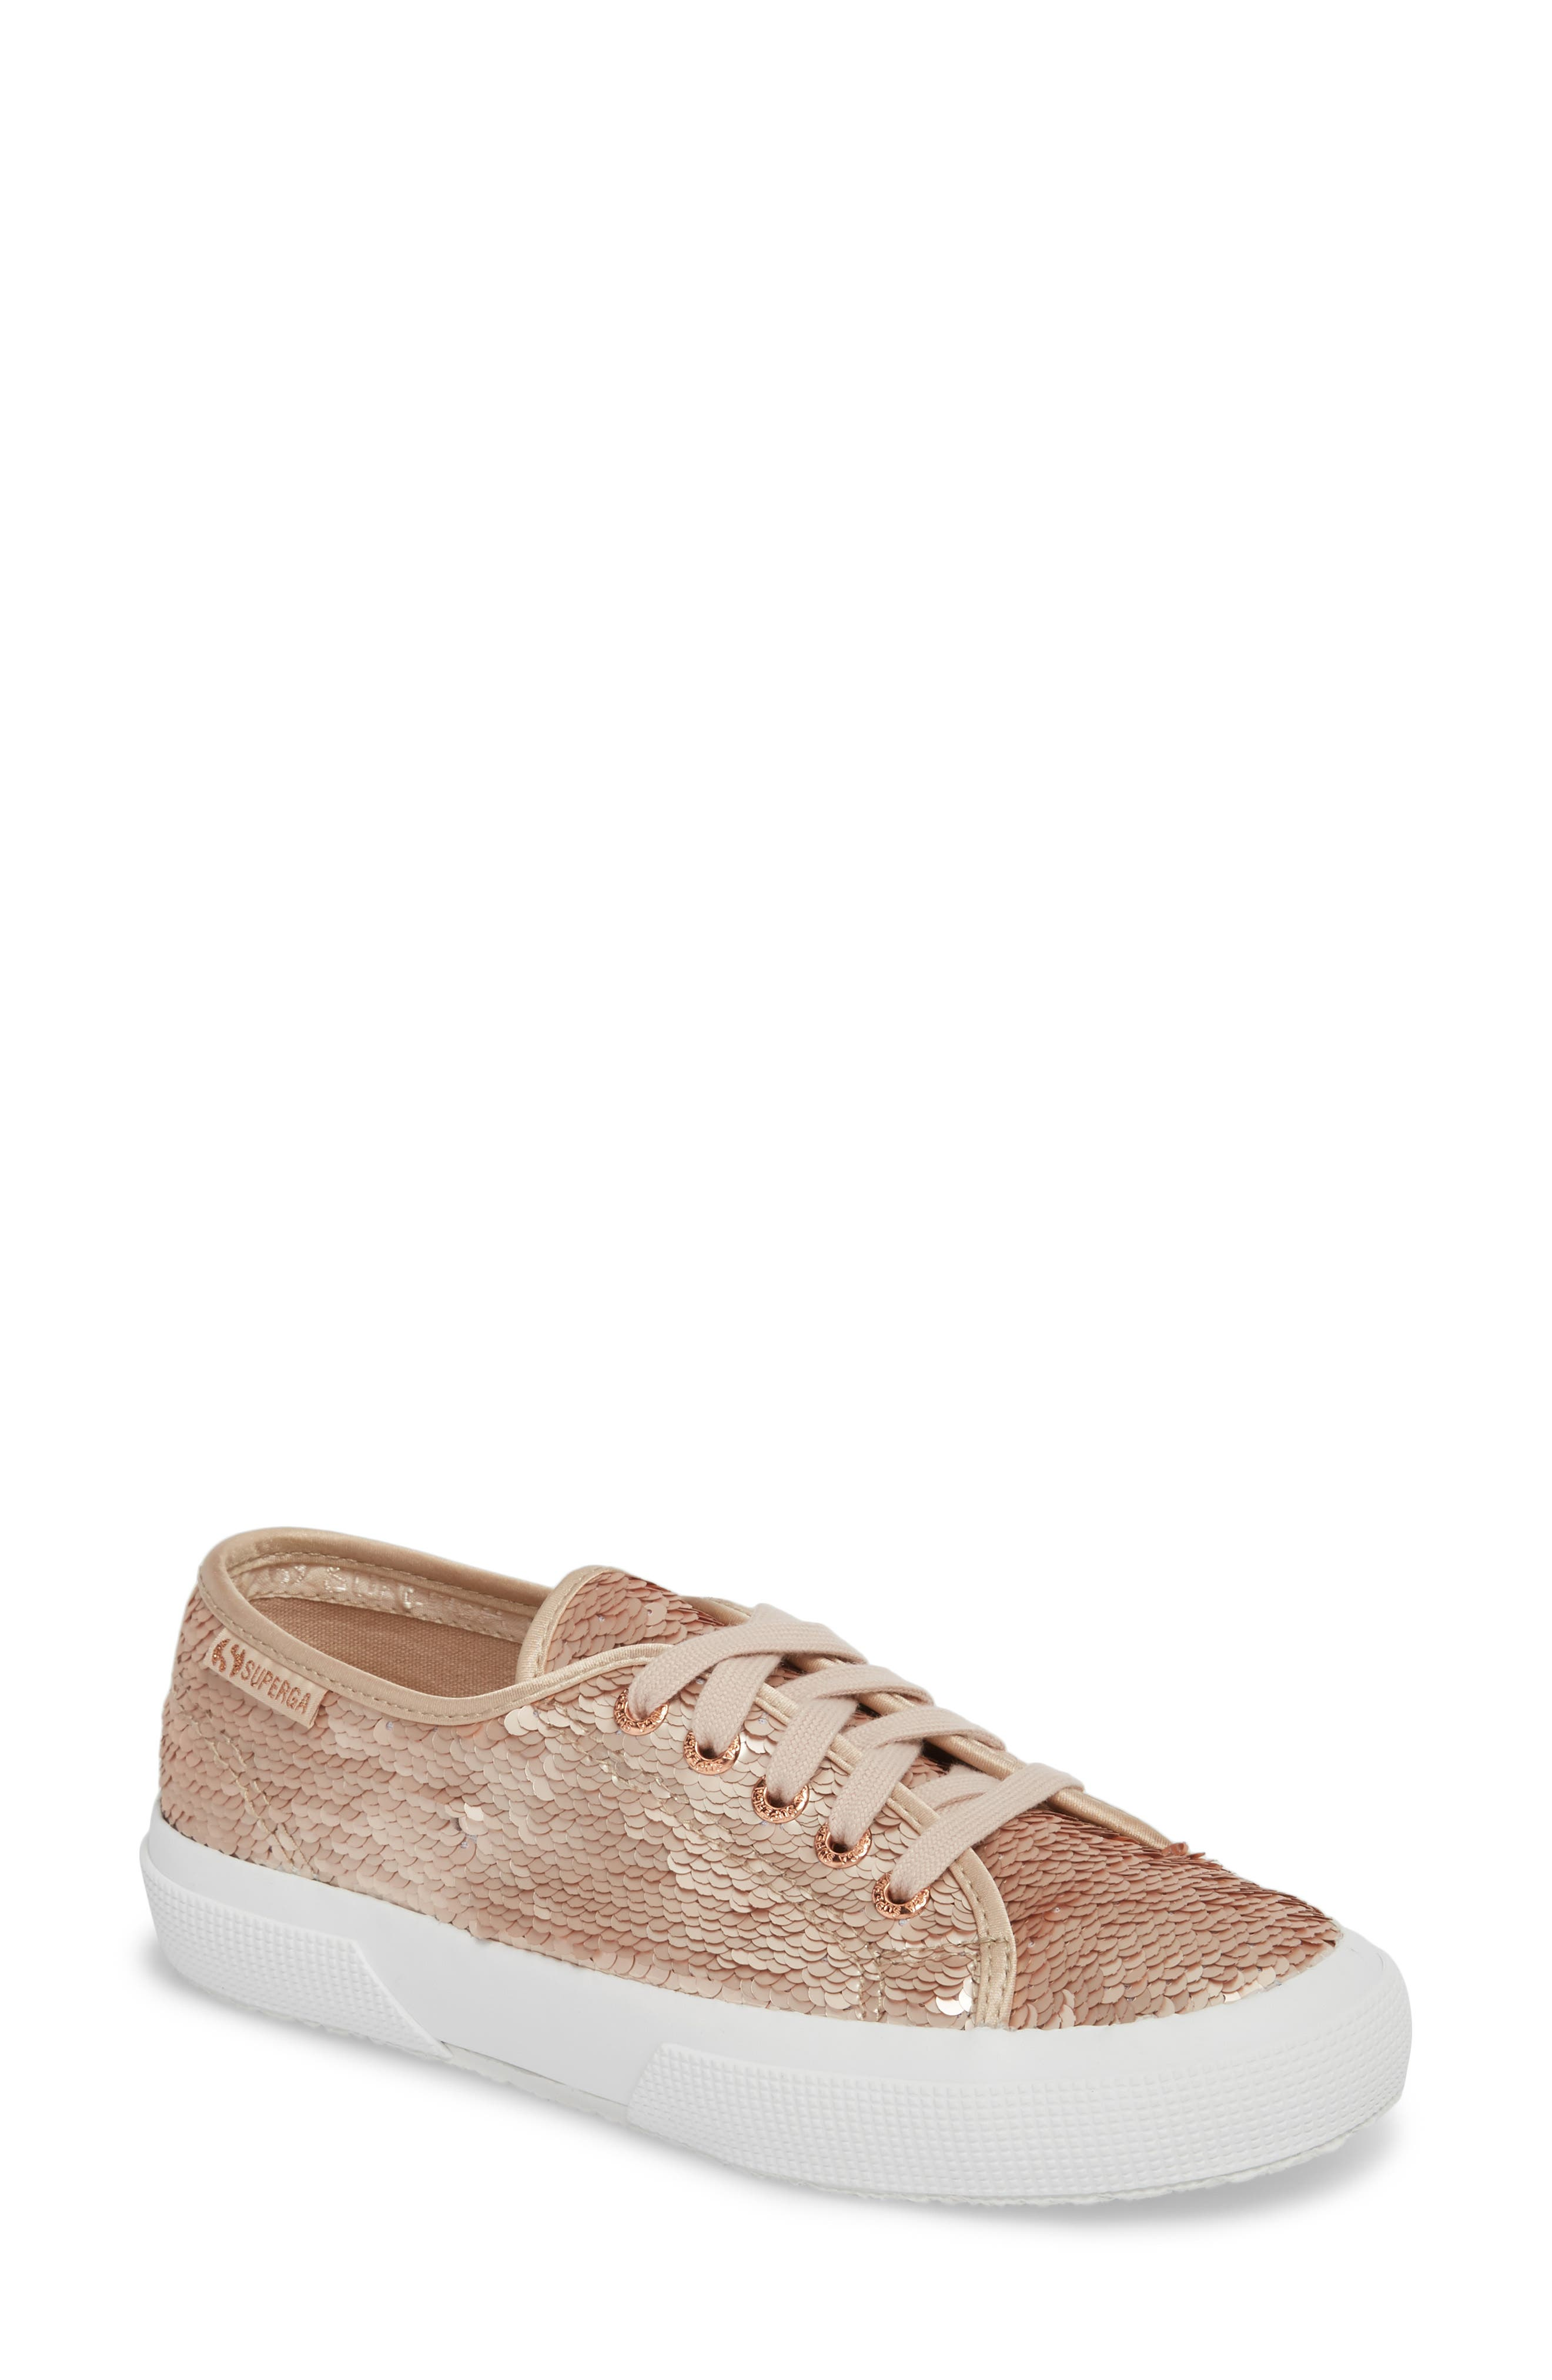 2750 Pairidescent Low Top Sneaker,                         Main,                         color, Rose Gold/ Rose Gold